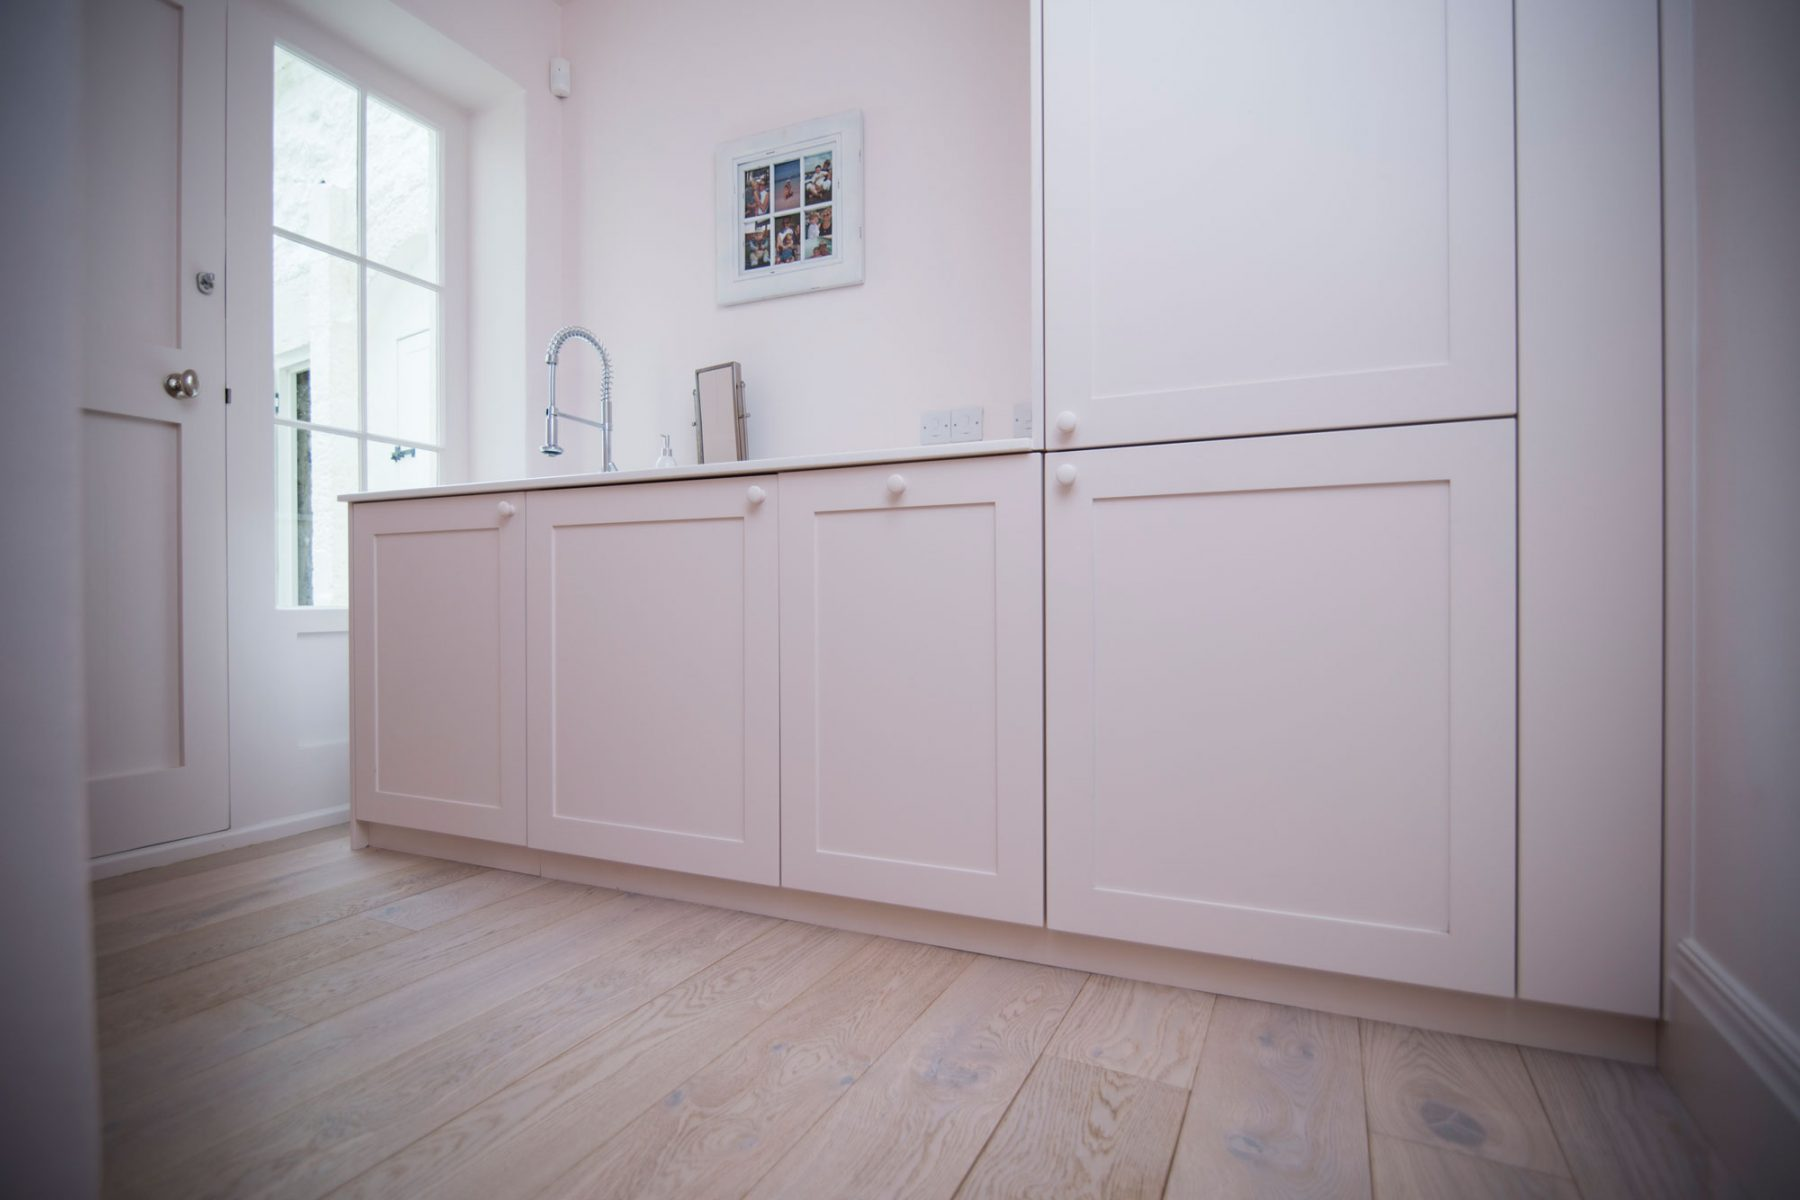 Modern utility room with wooden flooring